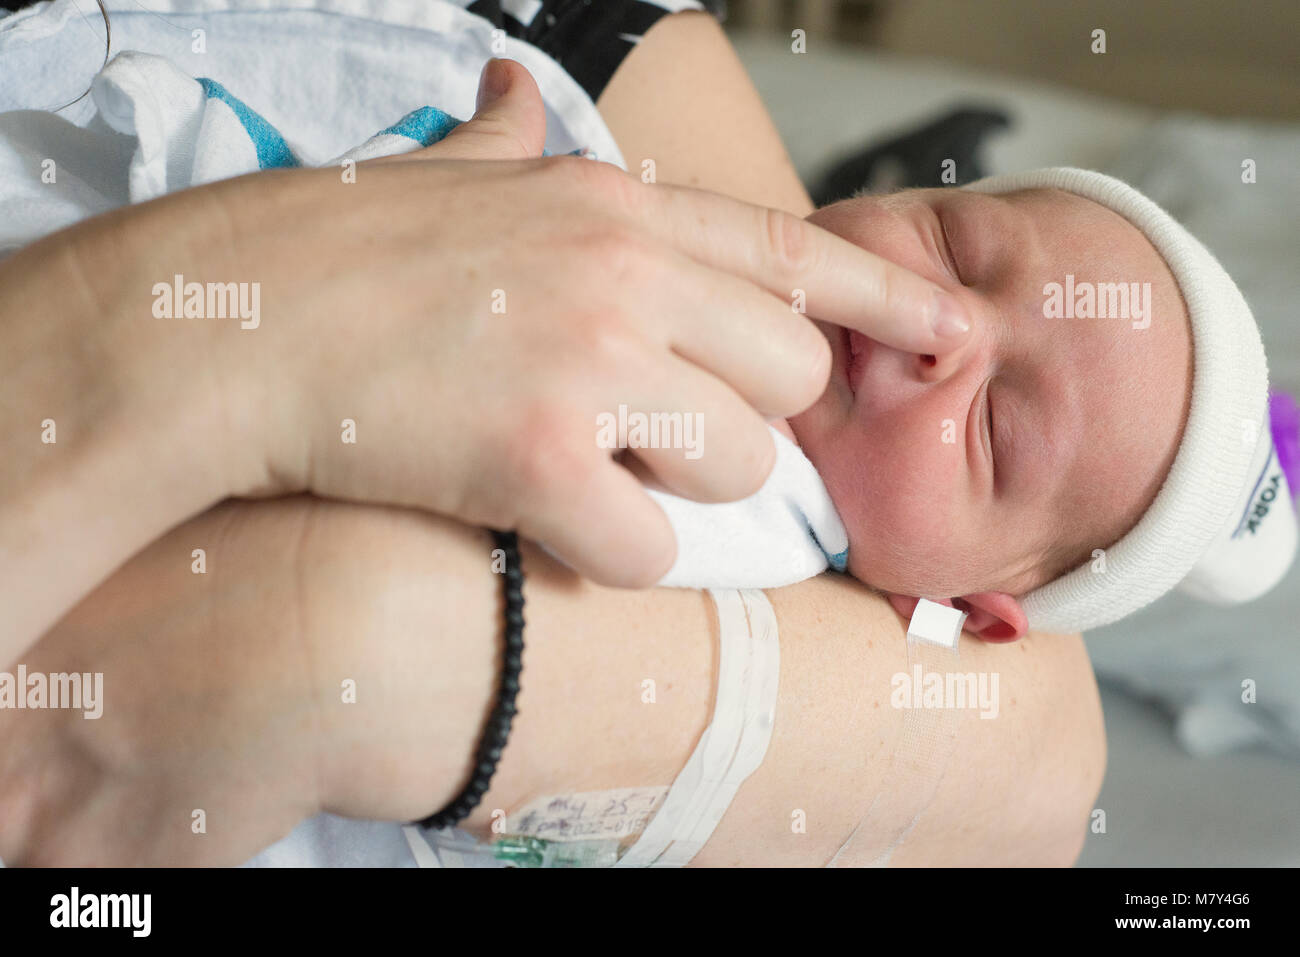 A newborn baby being held in the hospital by it's mother the day it's born. - Stock Image